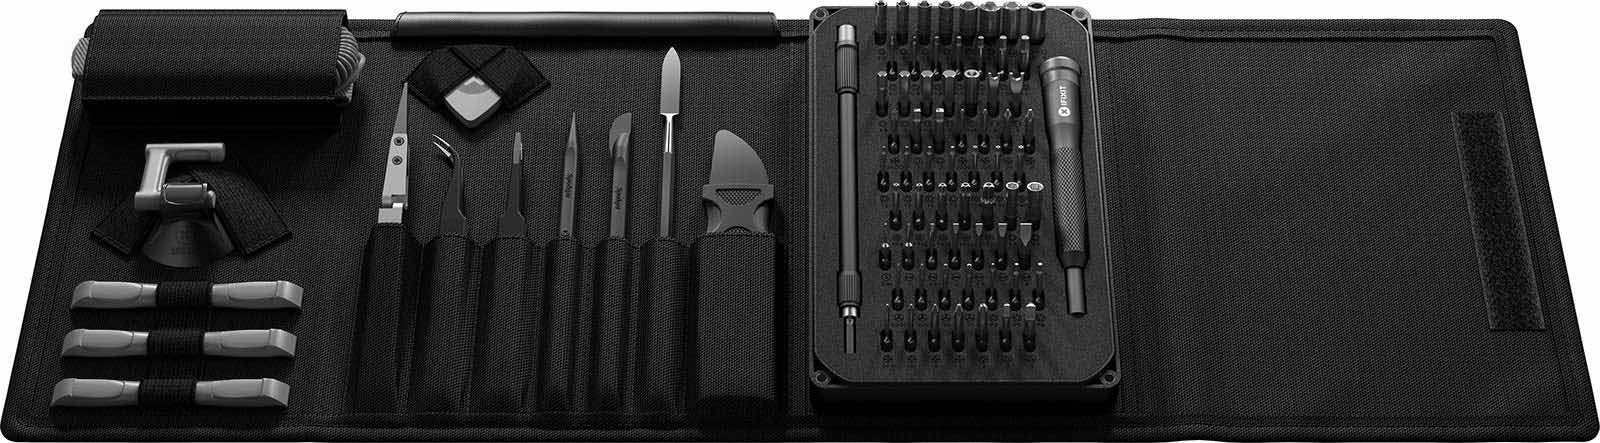 Can You Bring iFixit Toolkits On a Plane?